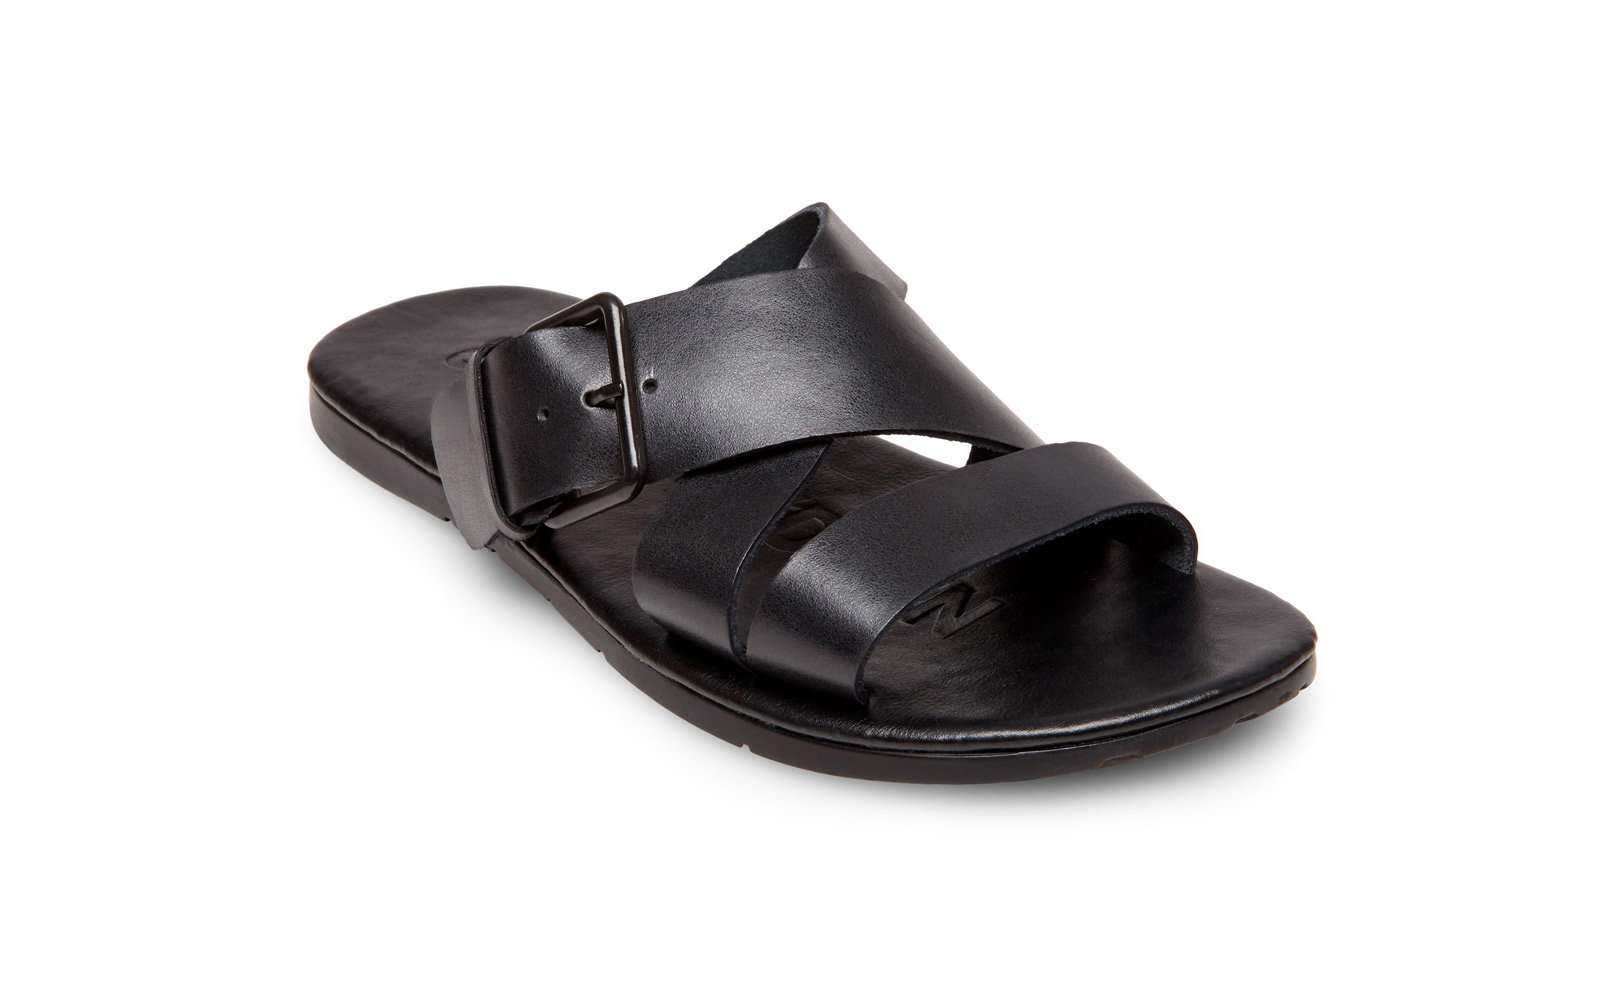 3b8ef8c641e6 The Best Men s Sandals to Pack for Your Next Vacation